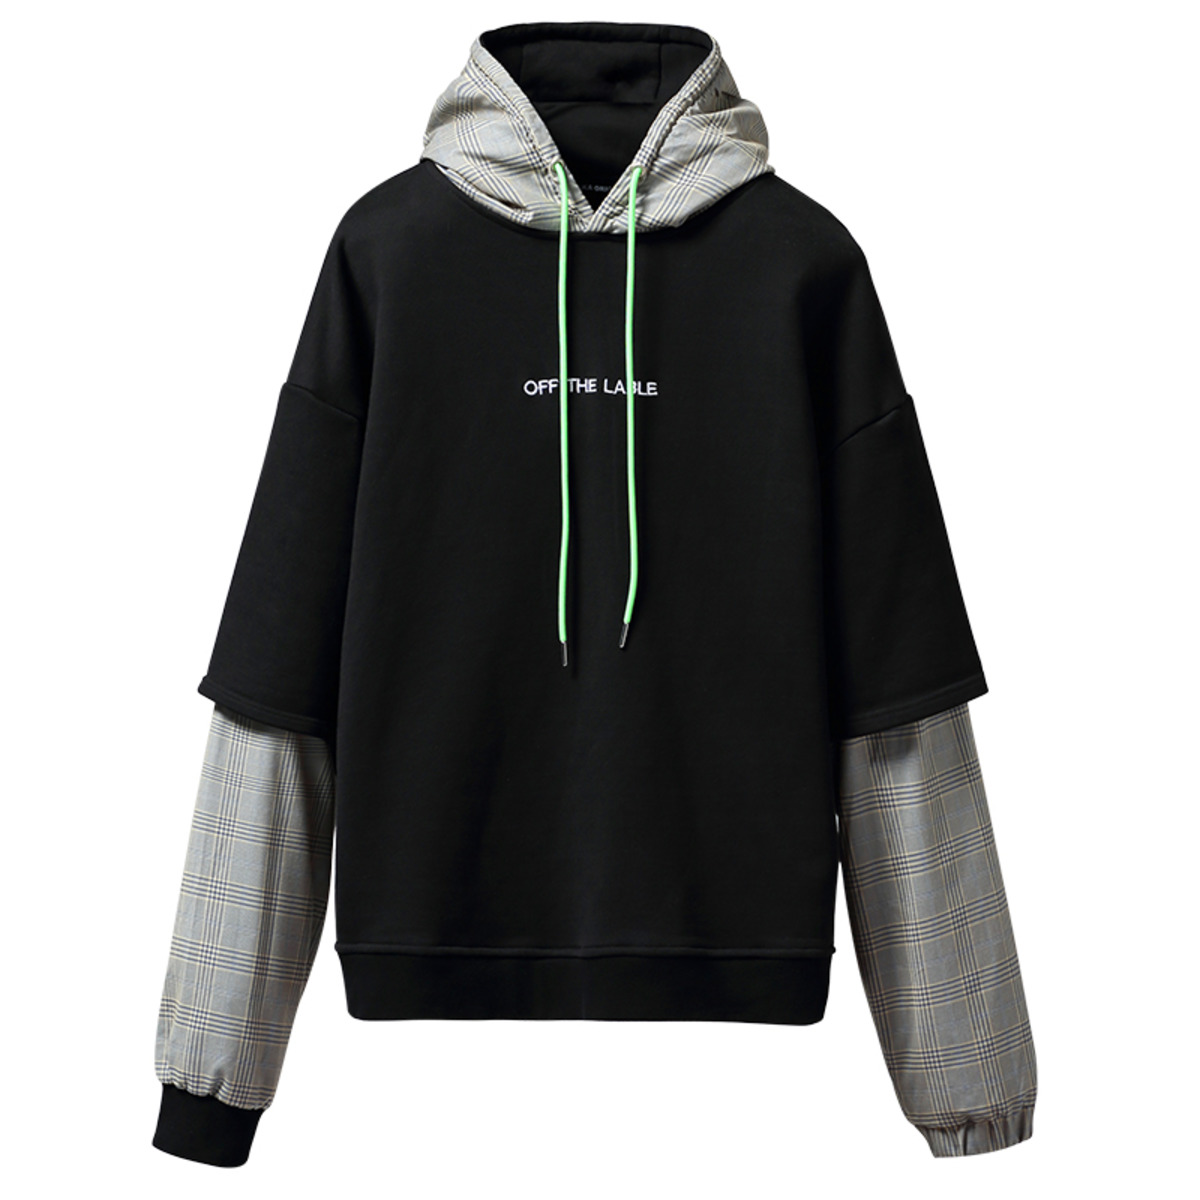 TAKA ORIGINAL 19AW EMBROIDERED LOGO HOODIE